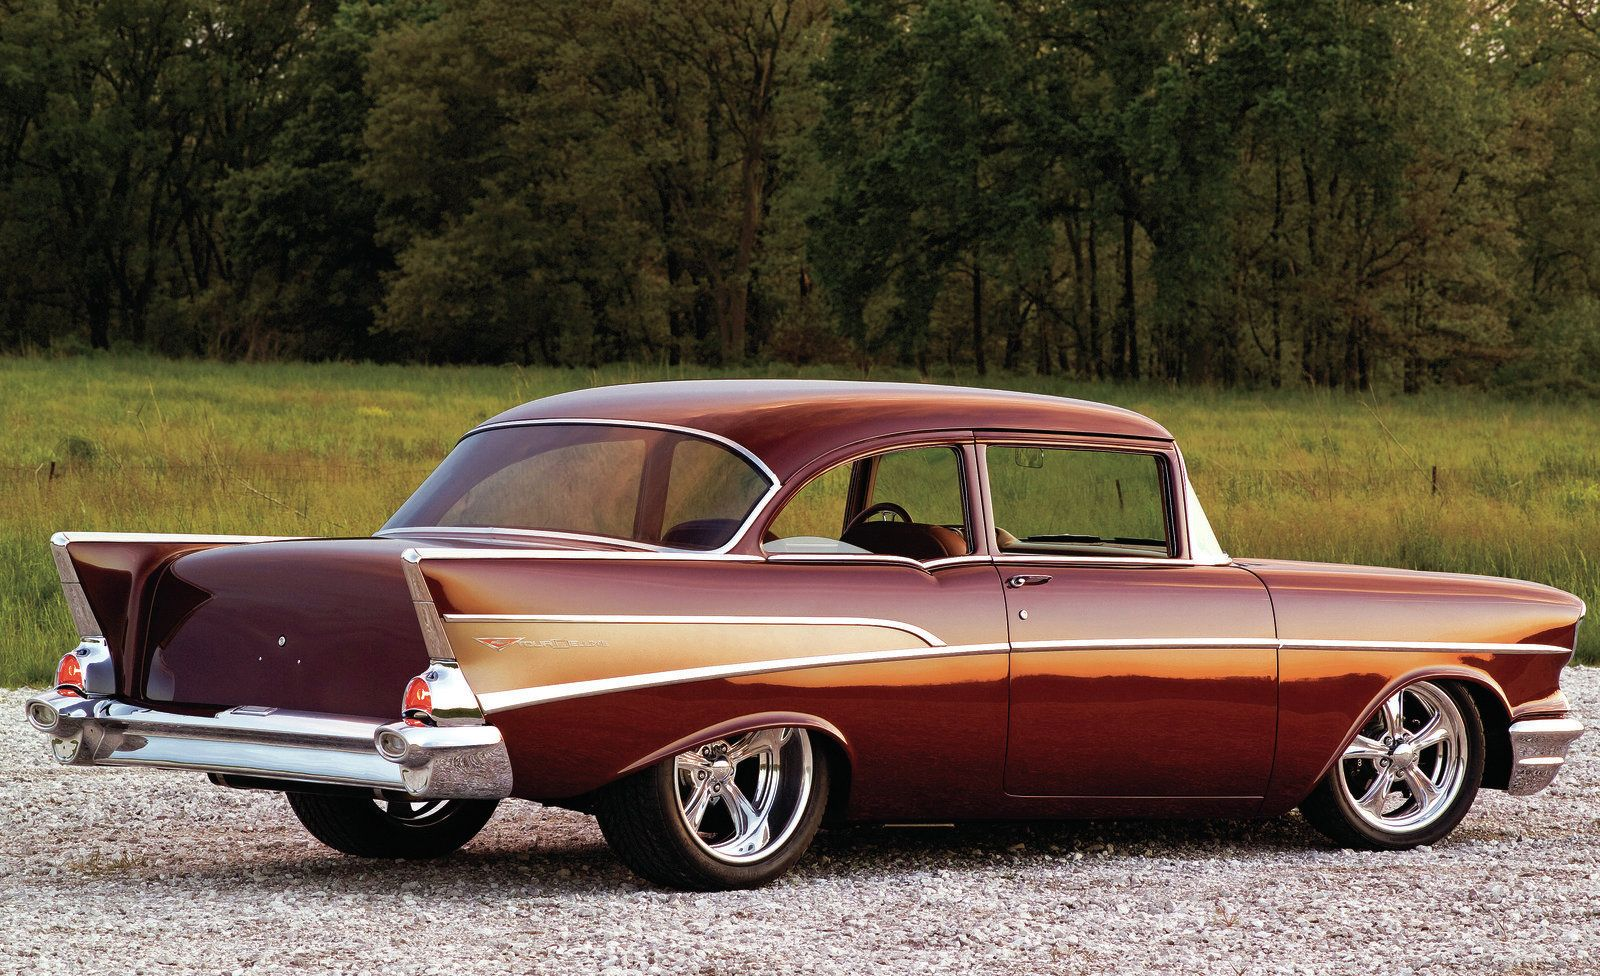 All Chevy chevy 210 : 1957 chevy 210 | 1957 Chevrolet 210 Pro Touring by ~Vertualissimo ...